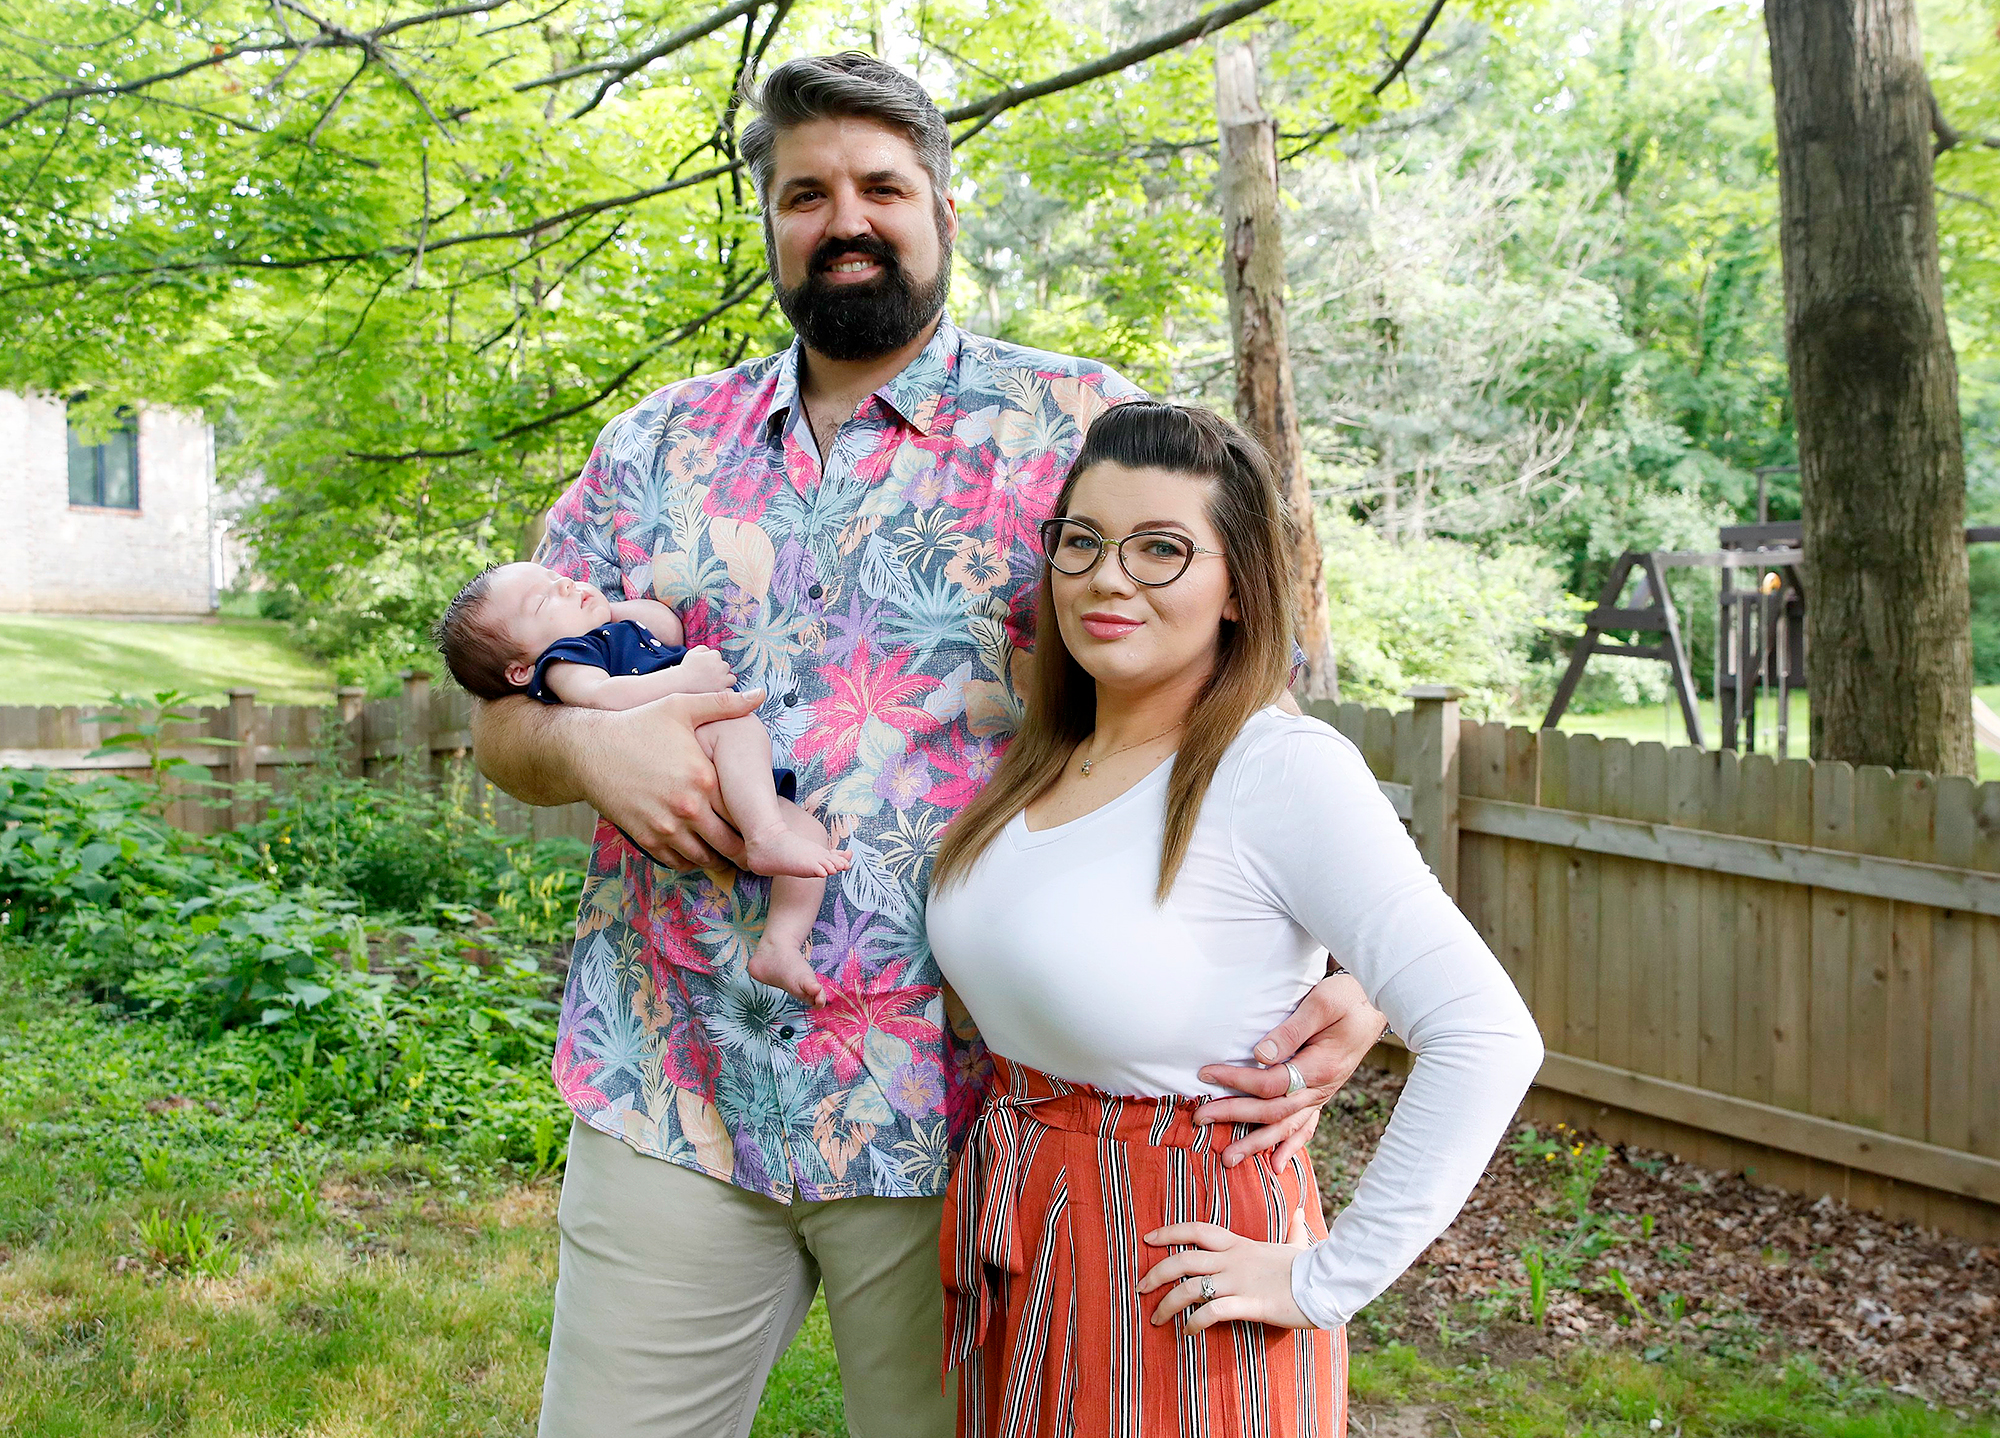 Amber-Portwood-BF-Andrew-Glennon-Seeks-Custody-of-Son-After-Her-Arrest